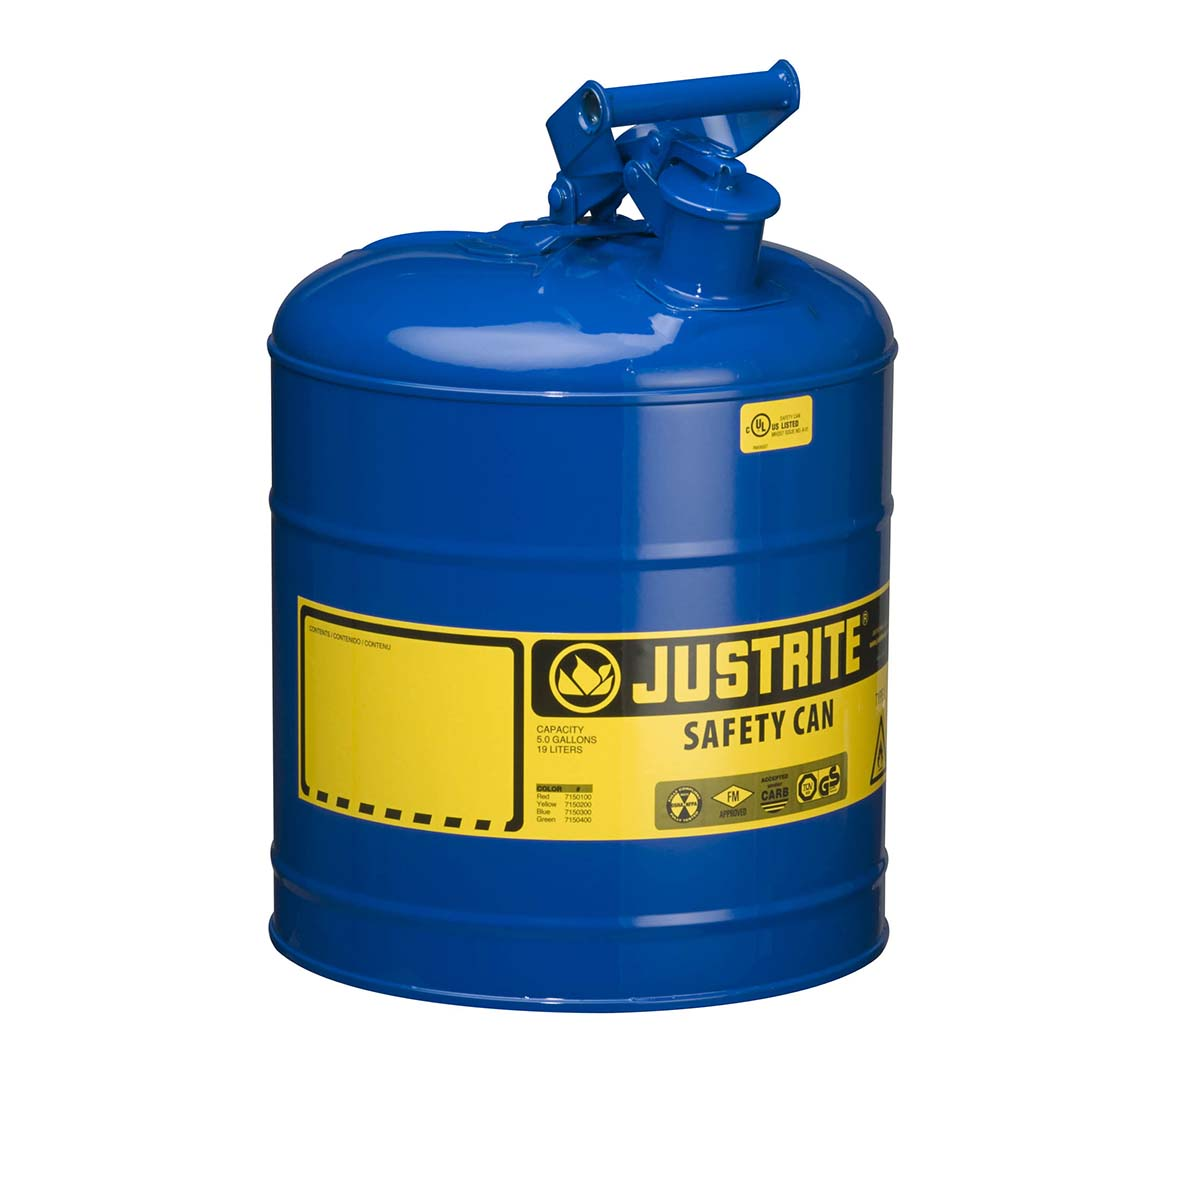 Type I Steel Safety Can for flammables, 5 gallon, S/S flame arrester, self-close lid, Blue.